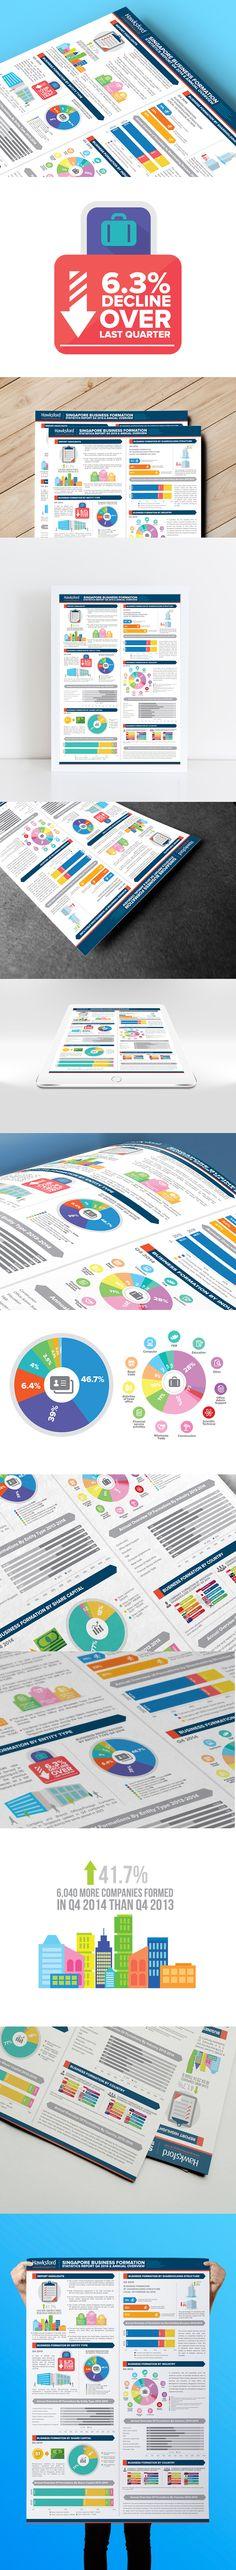 Hawksford Singapore releases Q4 2014 Singapore Business Formation Statistics Report in a infographic style designed by Lemongraphic.   #hawksford #singapore #sg #infographic #informationdesign #data #chart #piechart #flaticon #poster #flyer #business #formation #trends #report #corporate